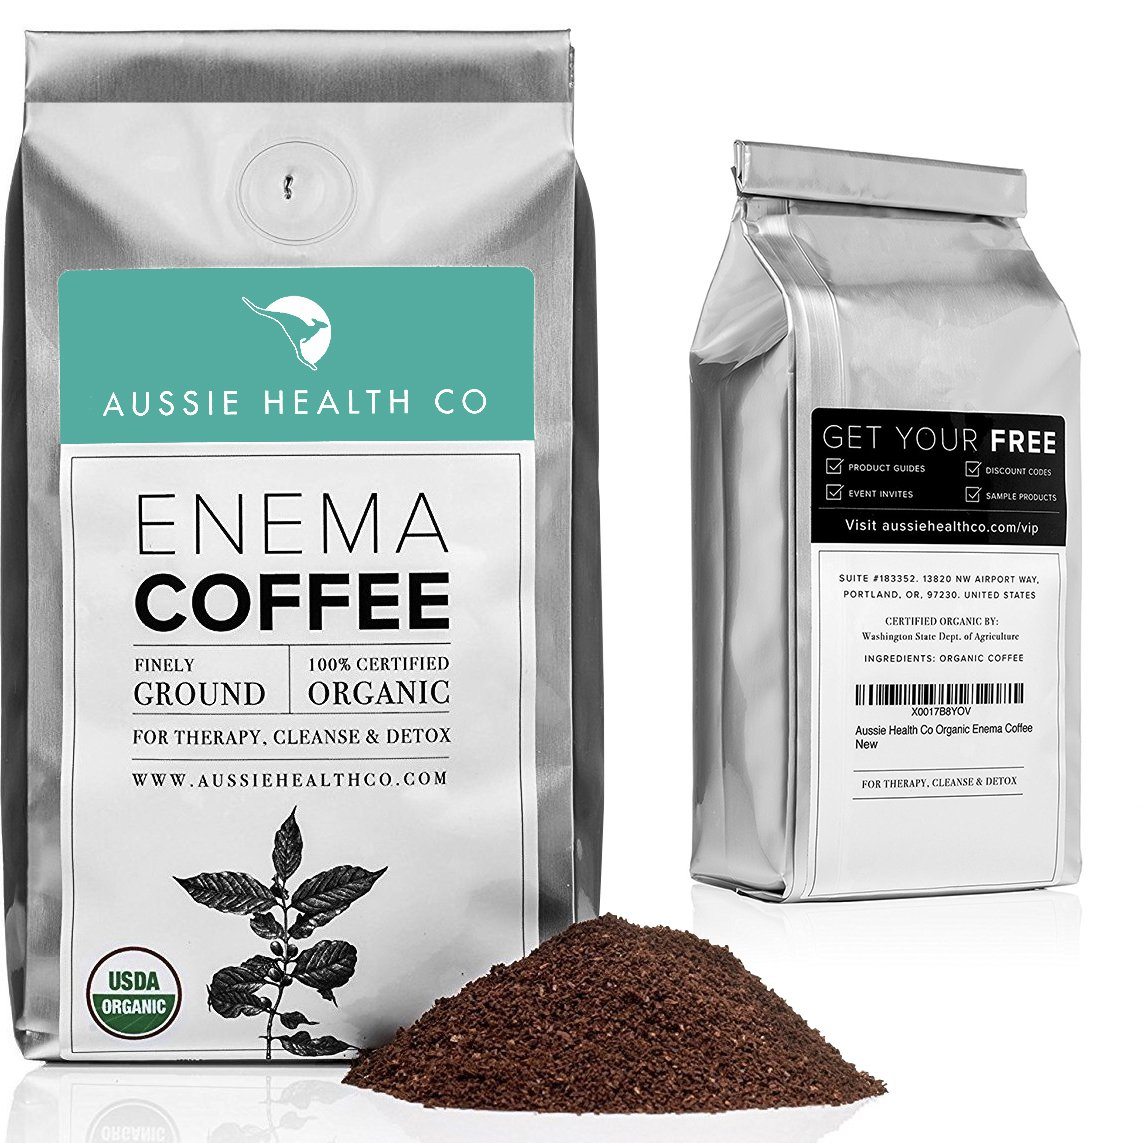 AUSSIE HEALTH CO 419° Roasted Organic Enema Coffee (1LB) for Unmatchable Enema & Gerson Cleanses. 100% USDA Certified Pre-Ground Organic Beans. Made in Seattle. by AUSSIE HEALTH CO